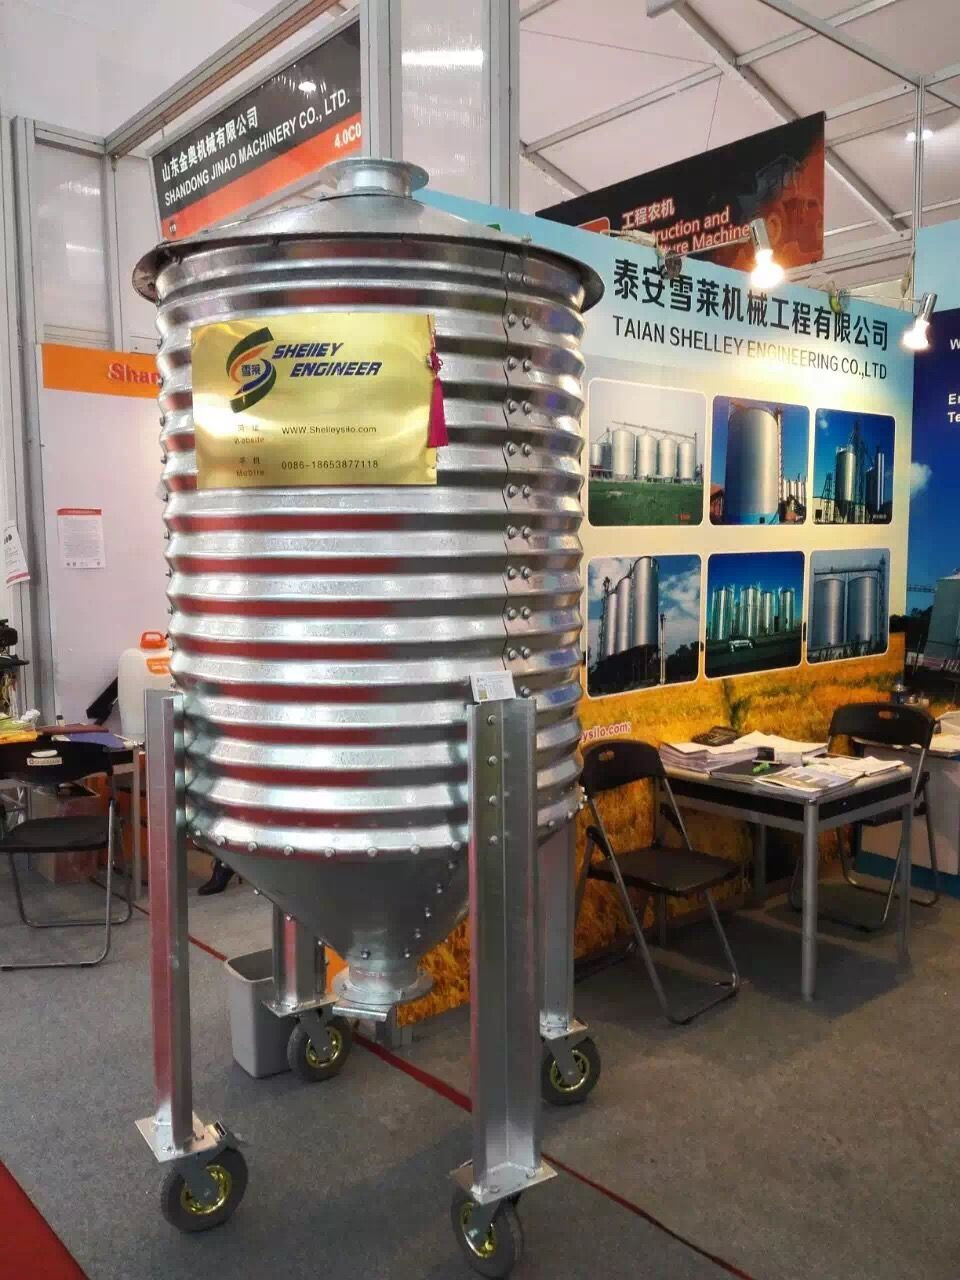 small resolution of this is 1ton mini silo used for grain pellet or any other materials pellets this 1 ton mini silo is made of galvanized steel sheet and it s movable type